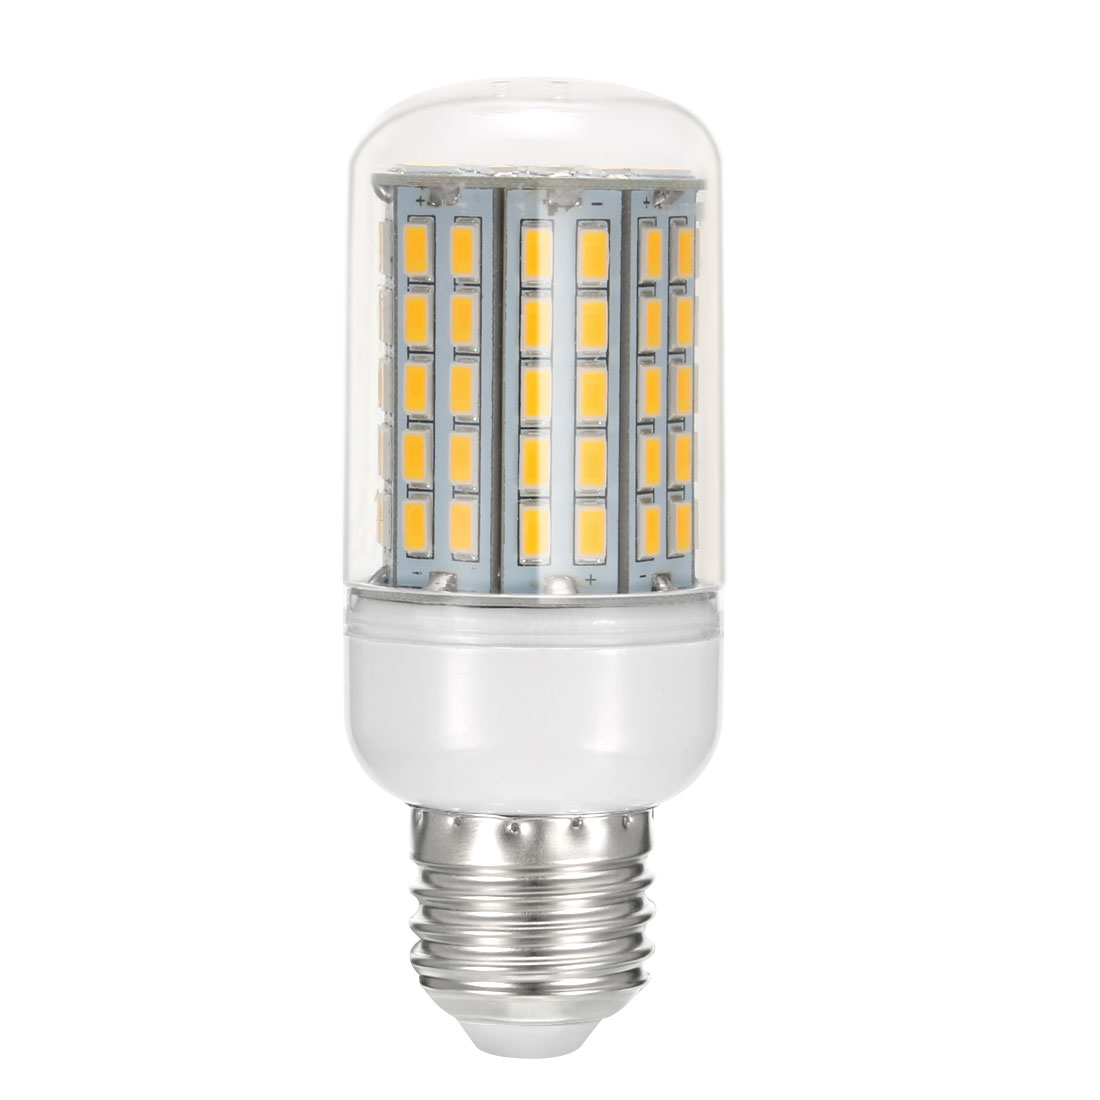 AC 220V 4.4W E27 Screw Base 96 LEDs 5730 Warm White 3000K LED Corn Light Bulb